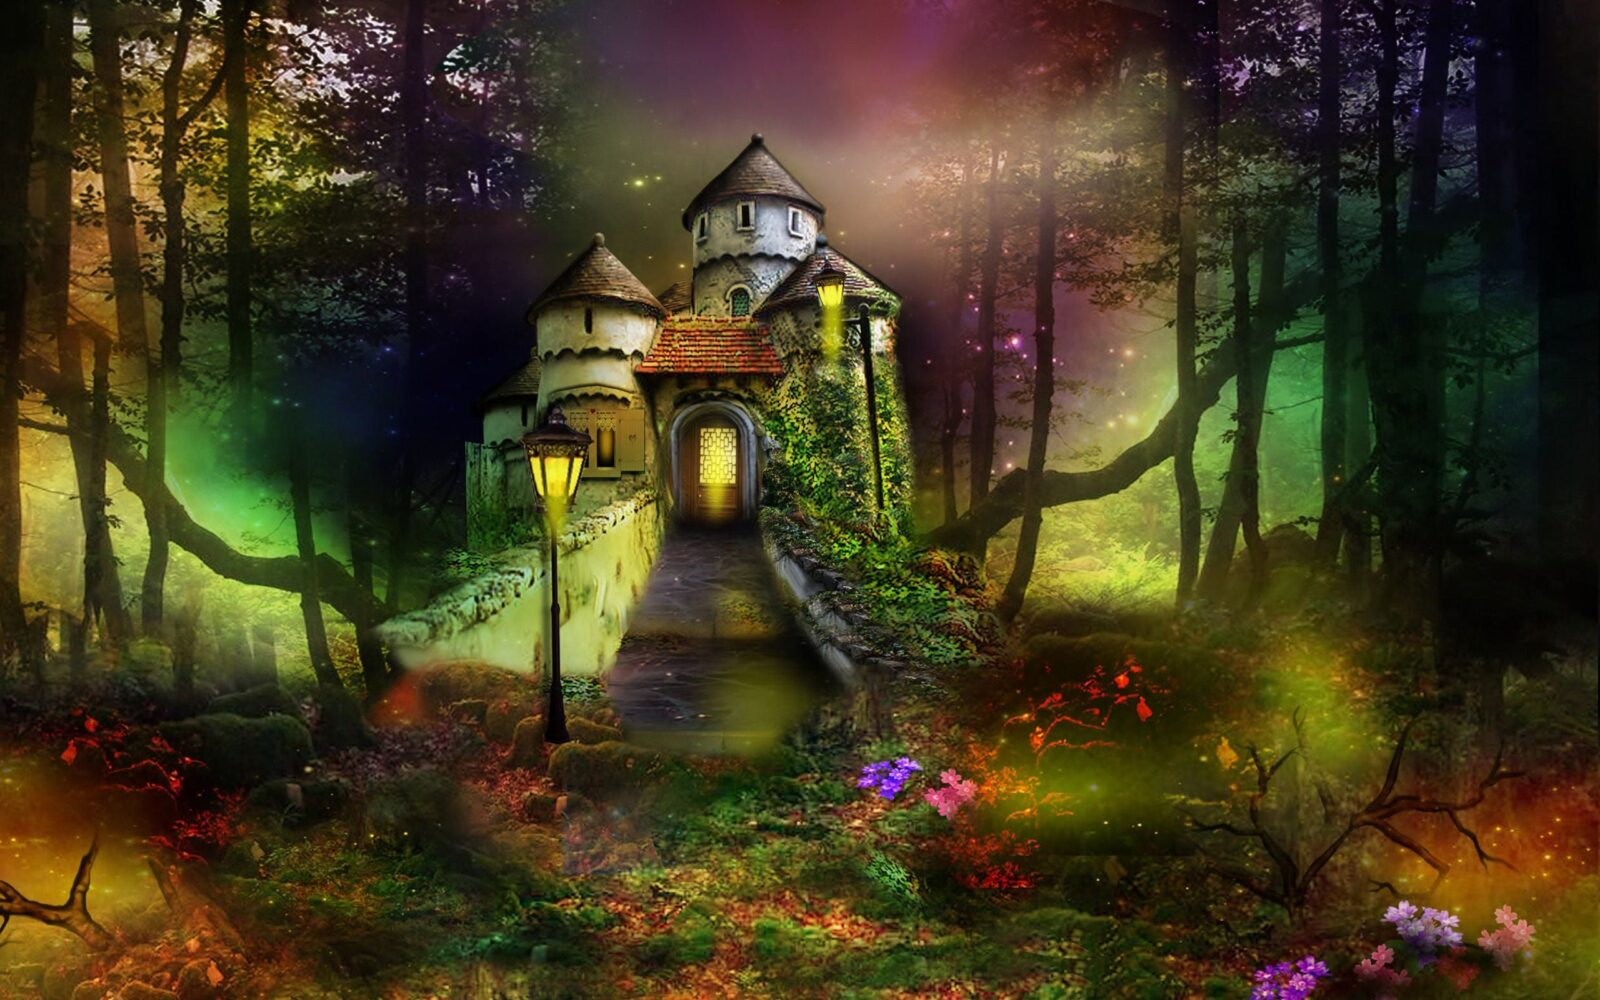 21 fairy tales castles hd wallpapers high quality download for 3d wallpaper for dream home